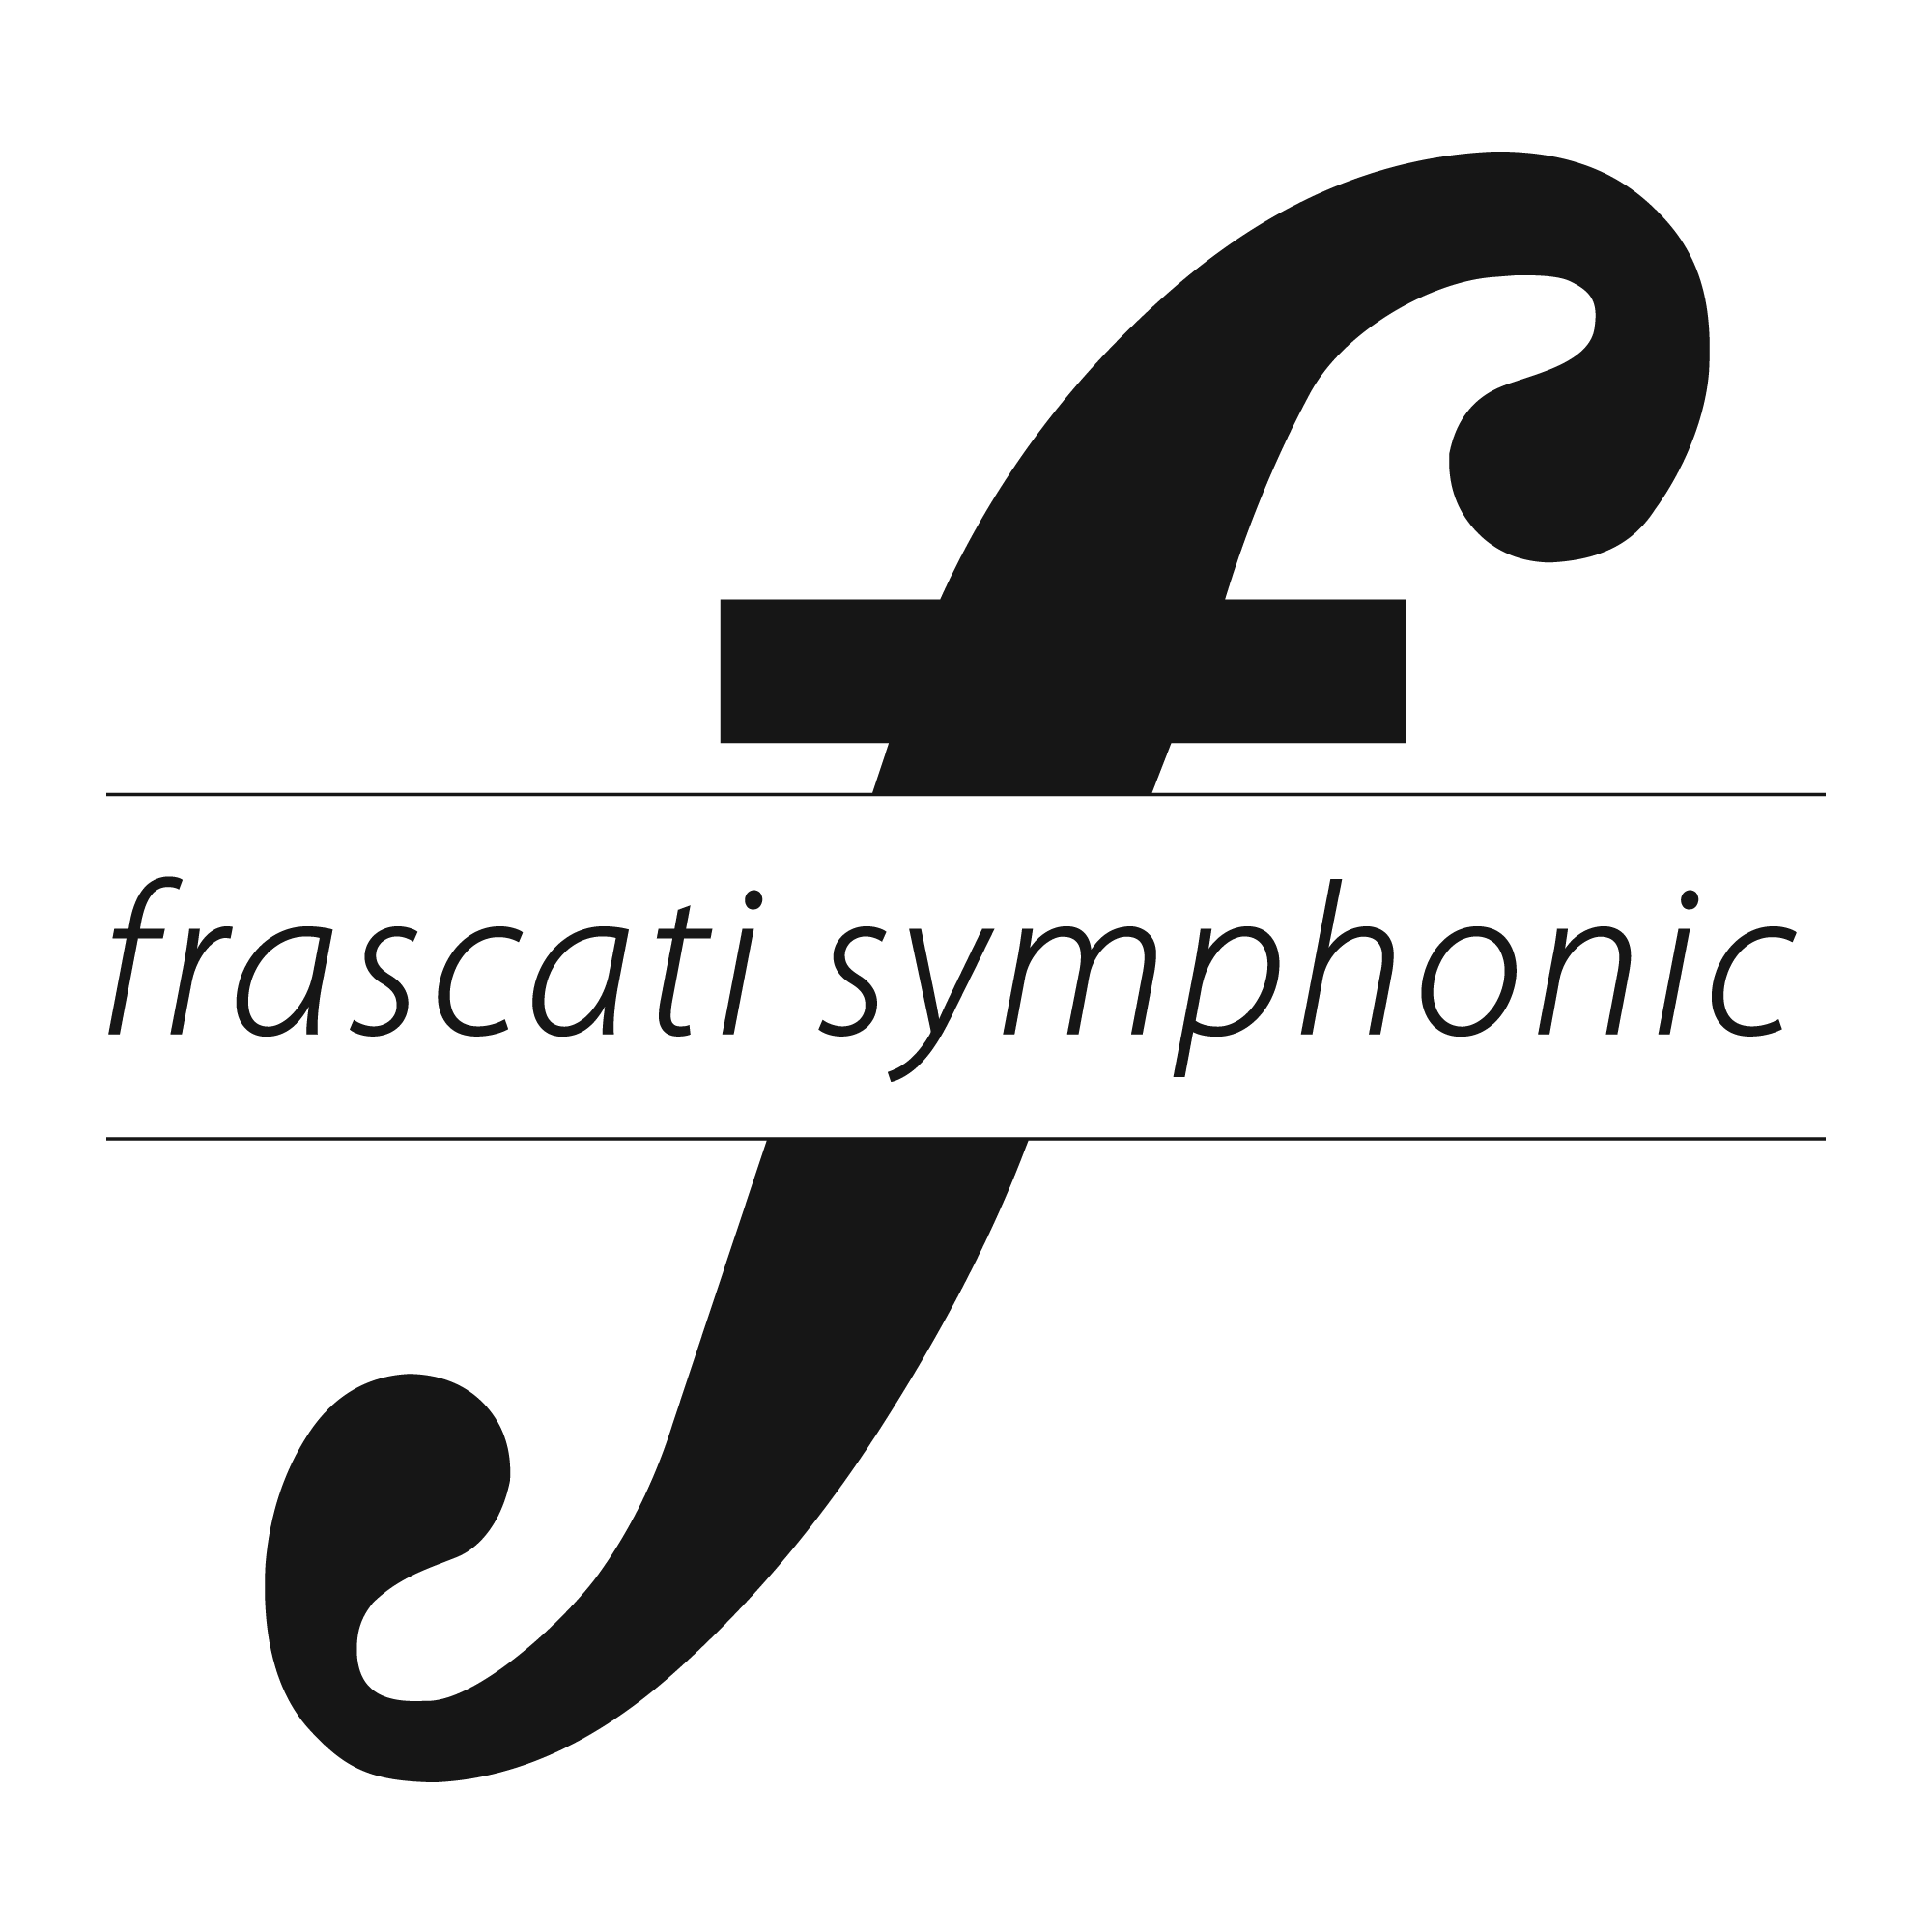 Frascati Symphonic - experience the orchestra